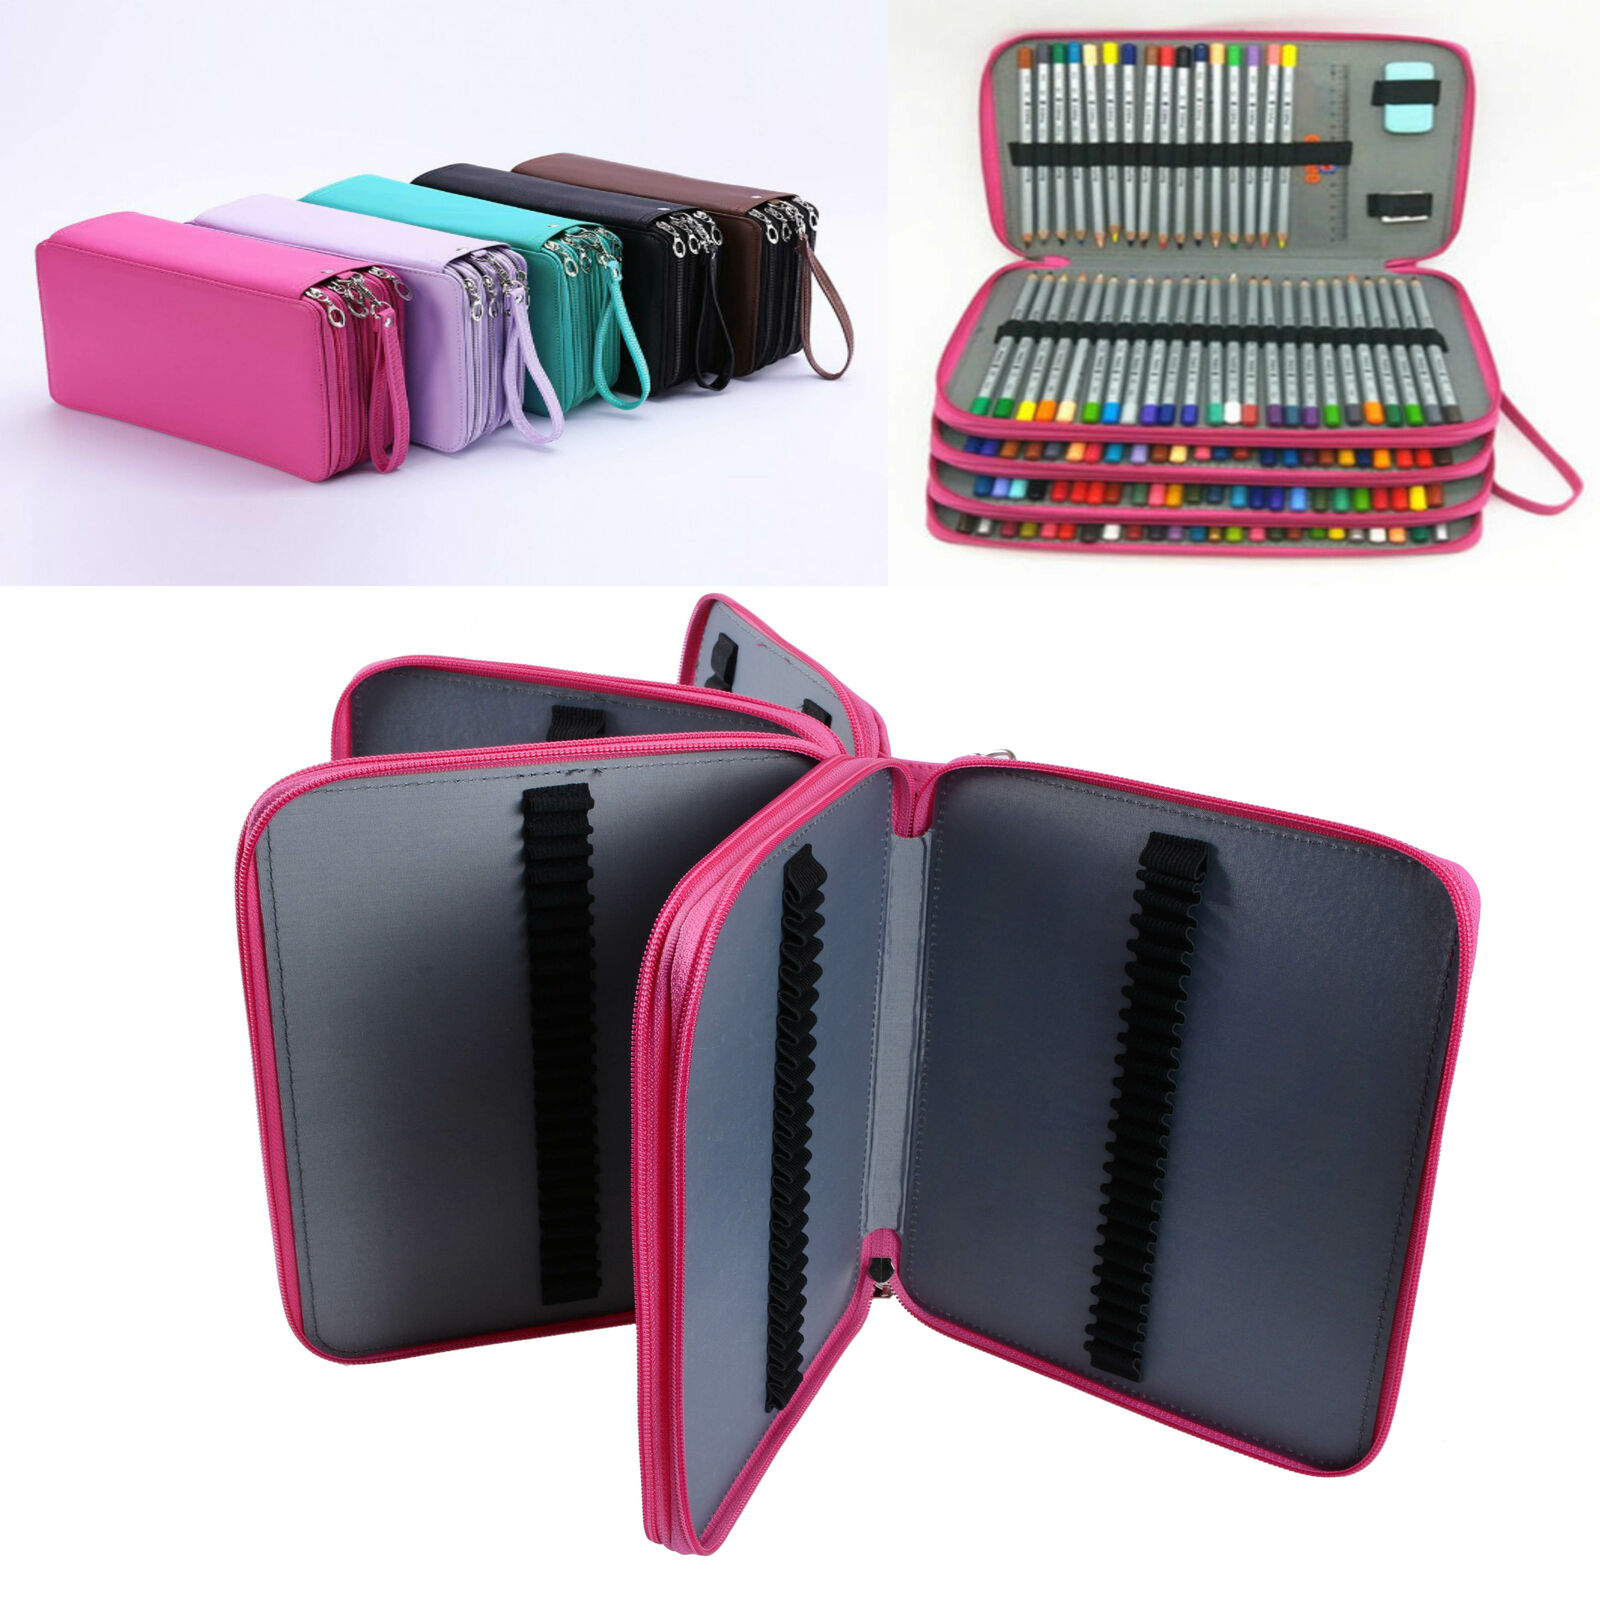 184 Slots Large Pencil Case Pen Bag Organizer Colored Foldable Storage Capacity